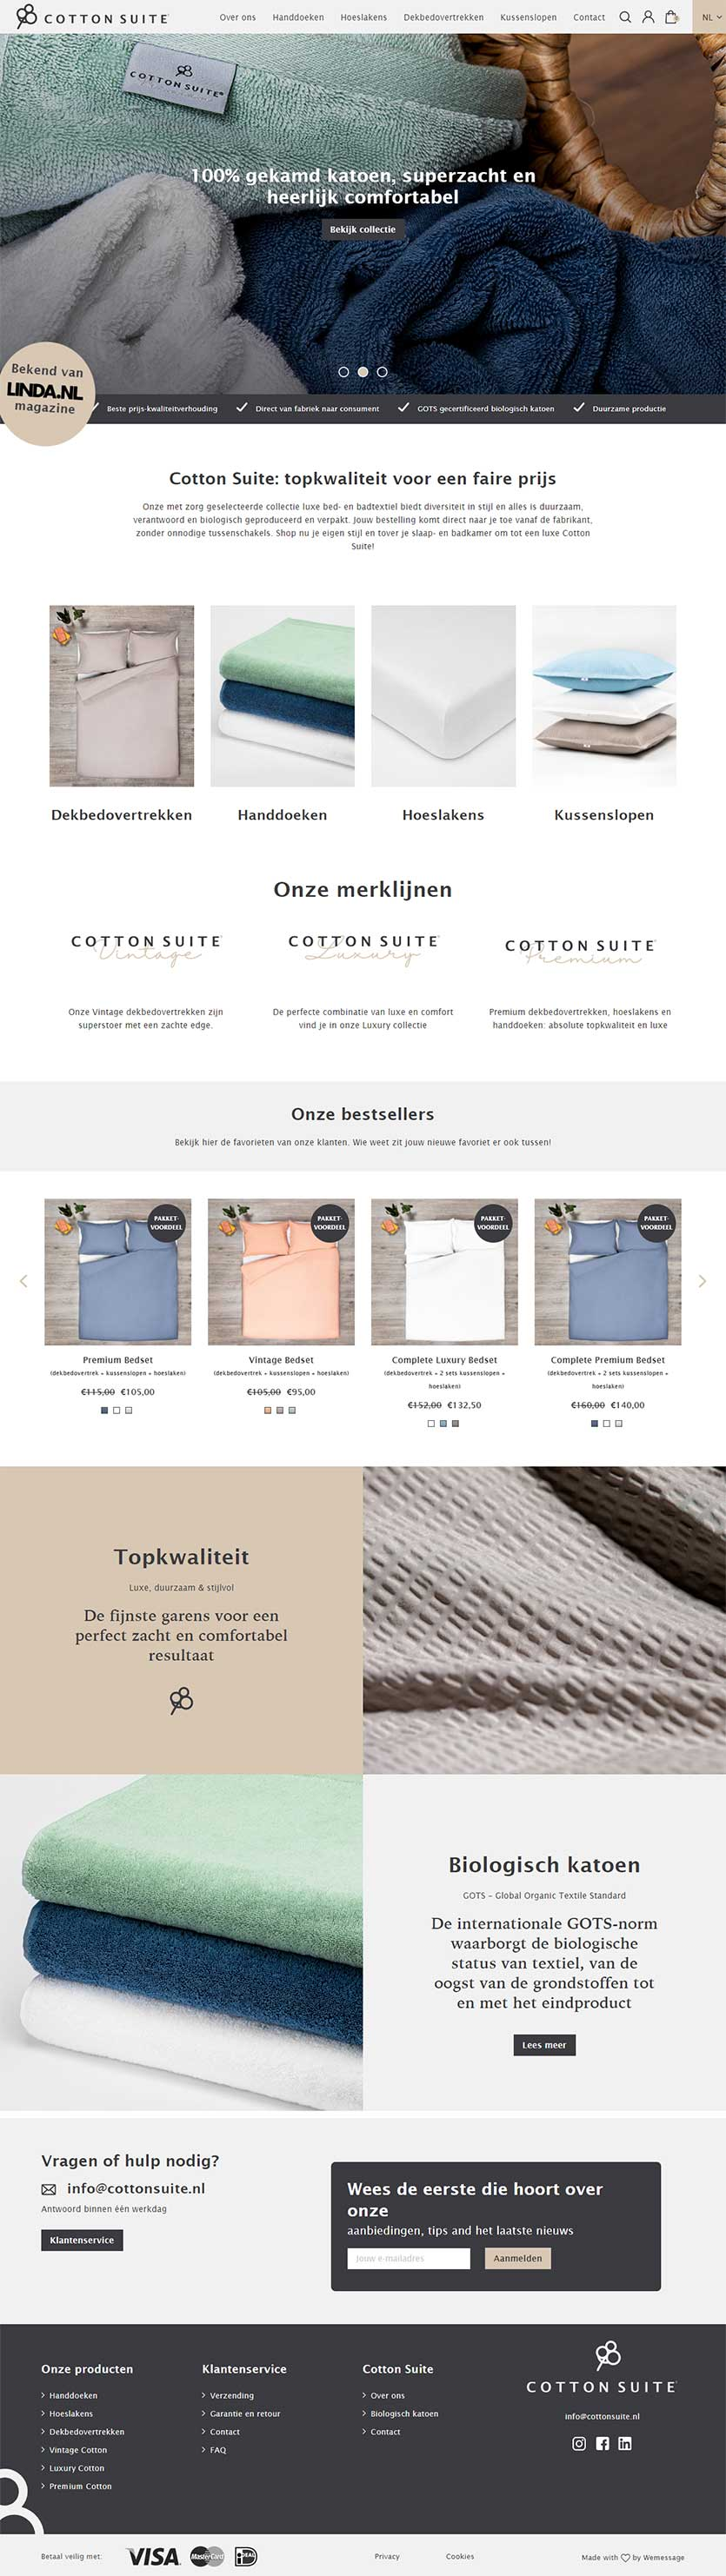 Cotton Suite website voorbeeld op laptops